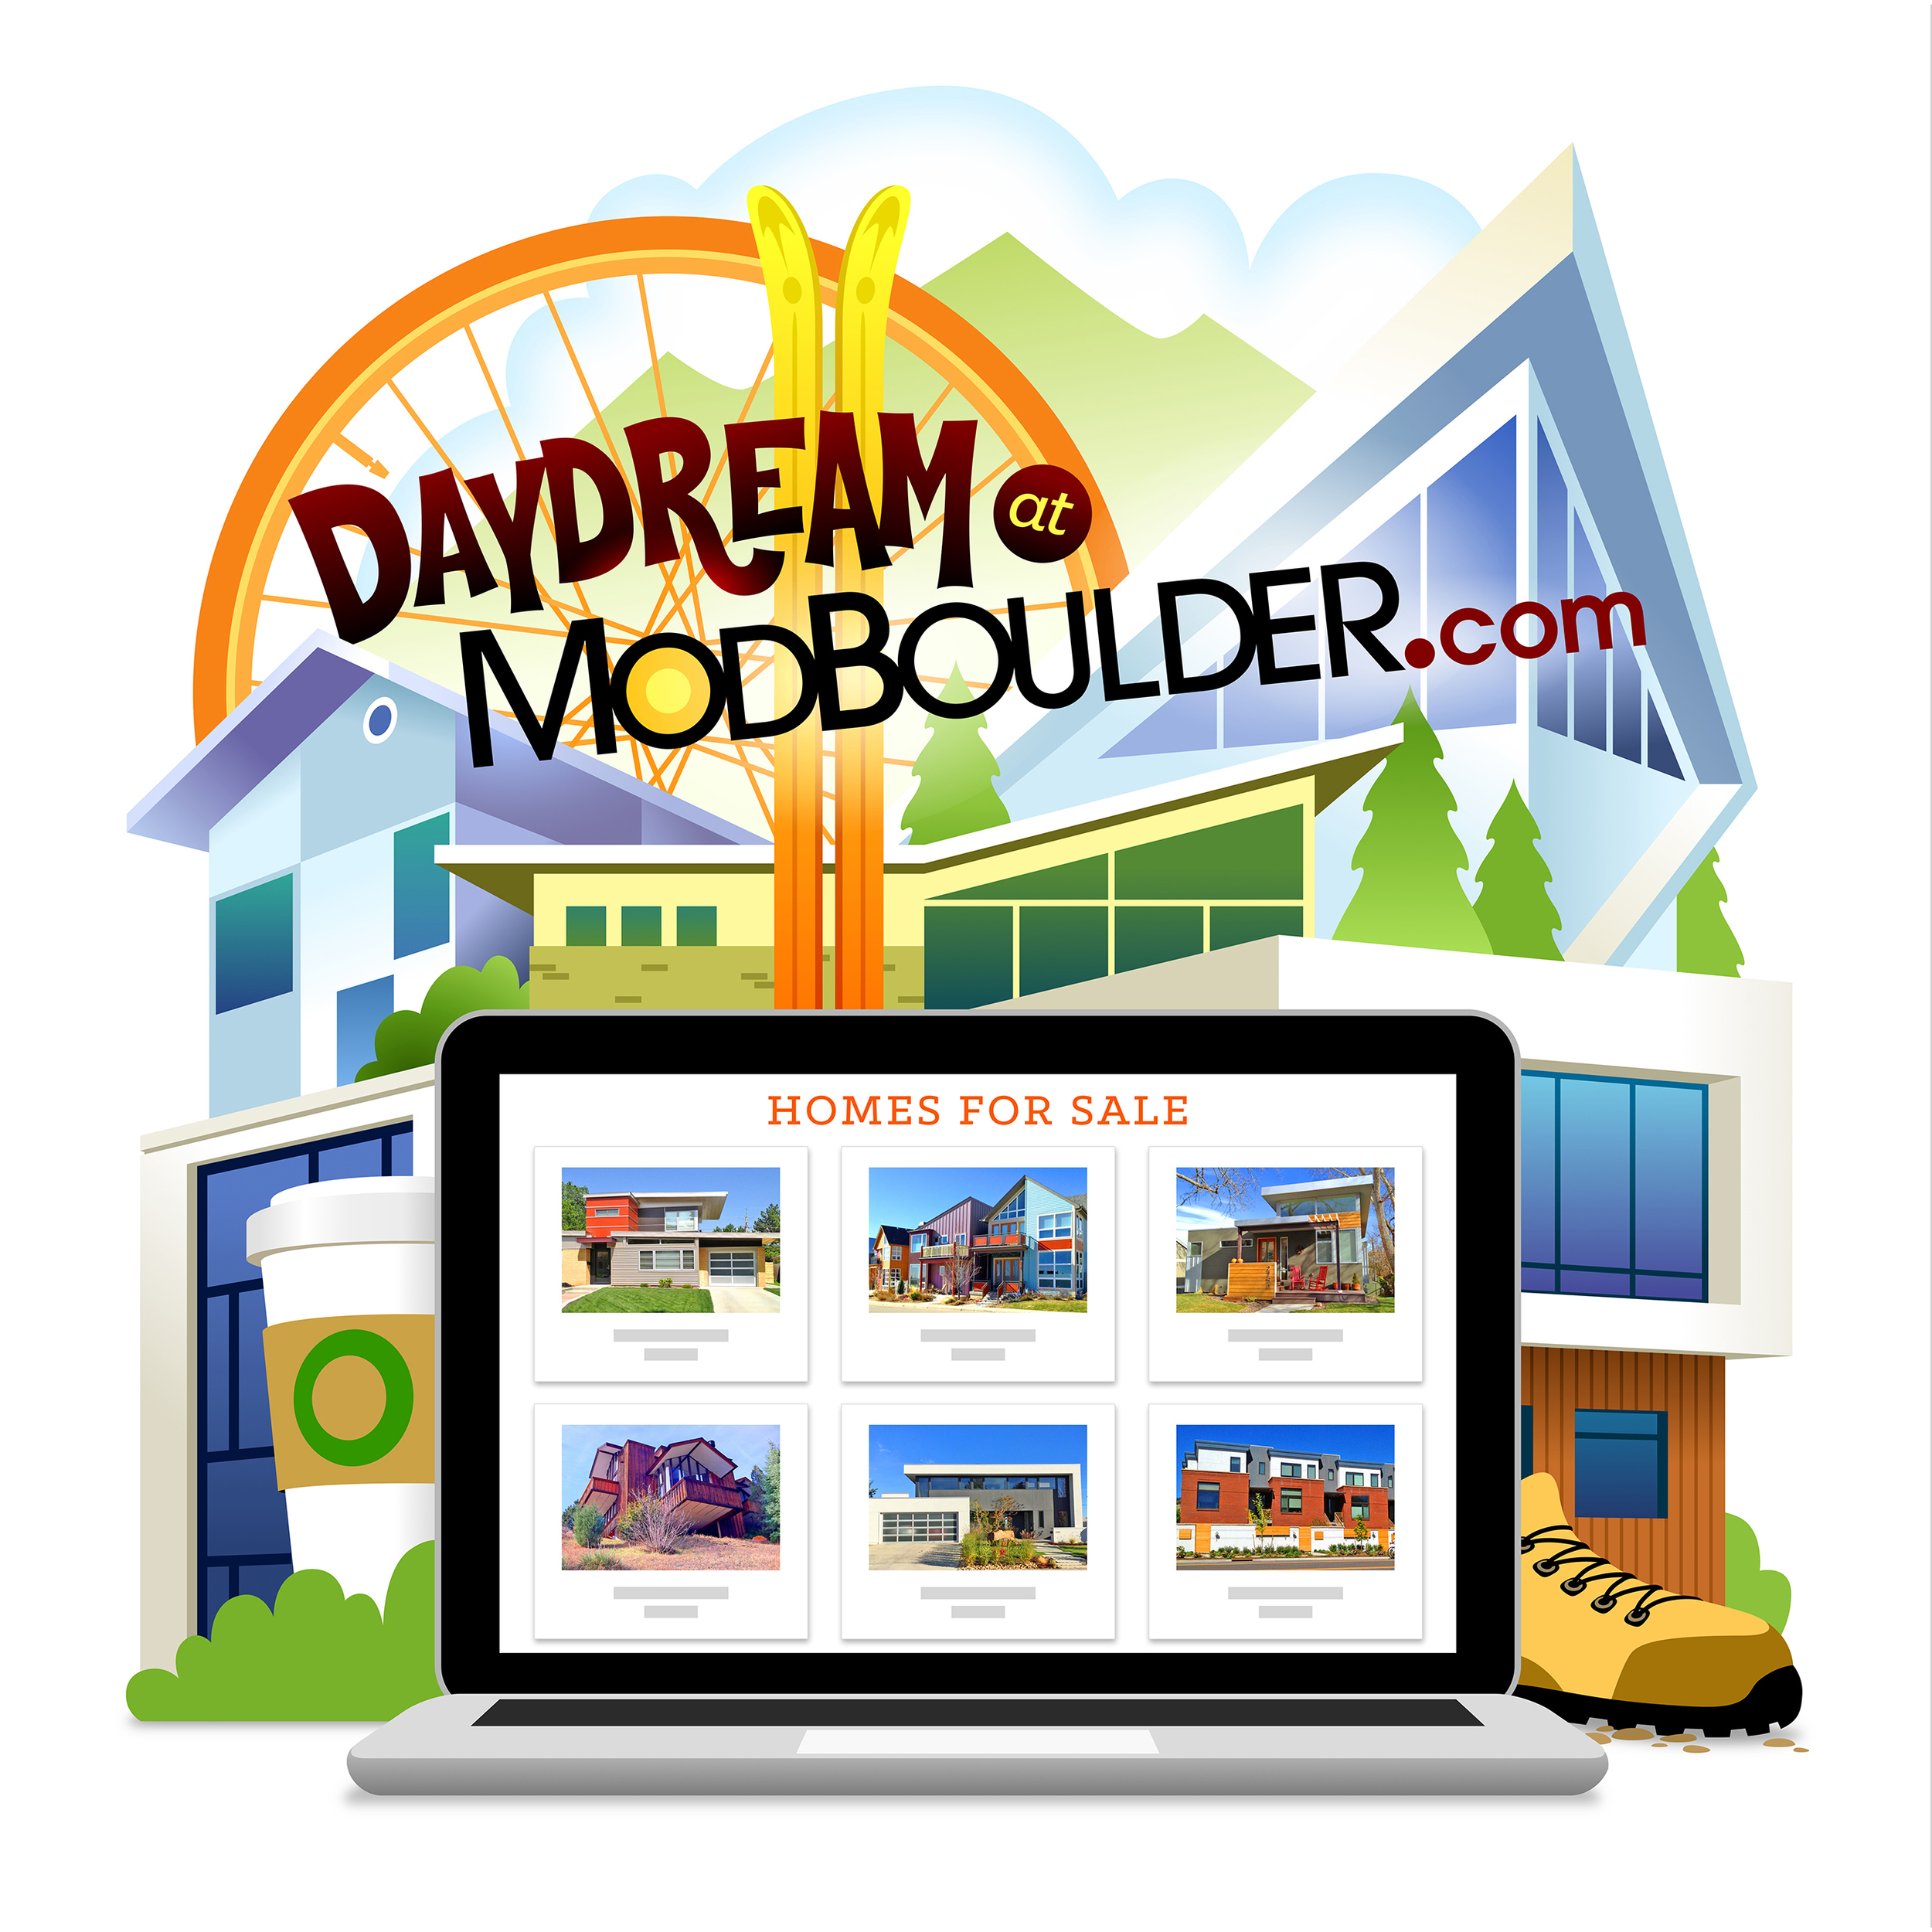 Daydream  • An illustration to inspire people to browse dream homes online.  Client: Mod Boulder